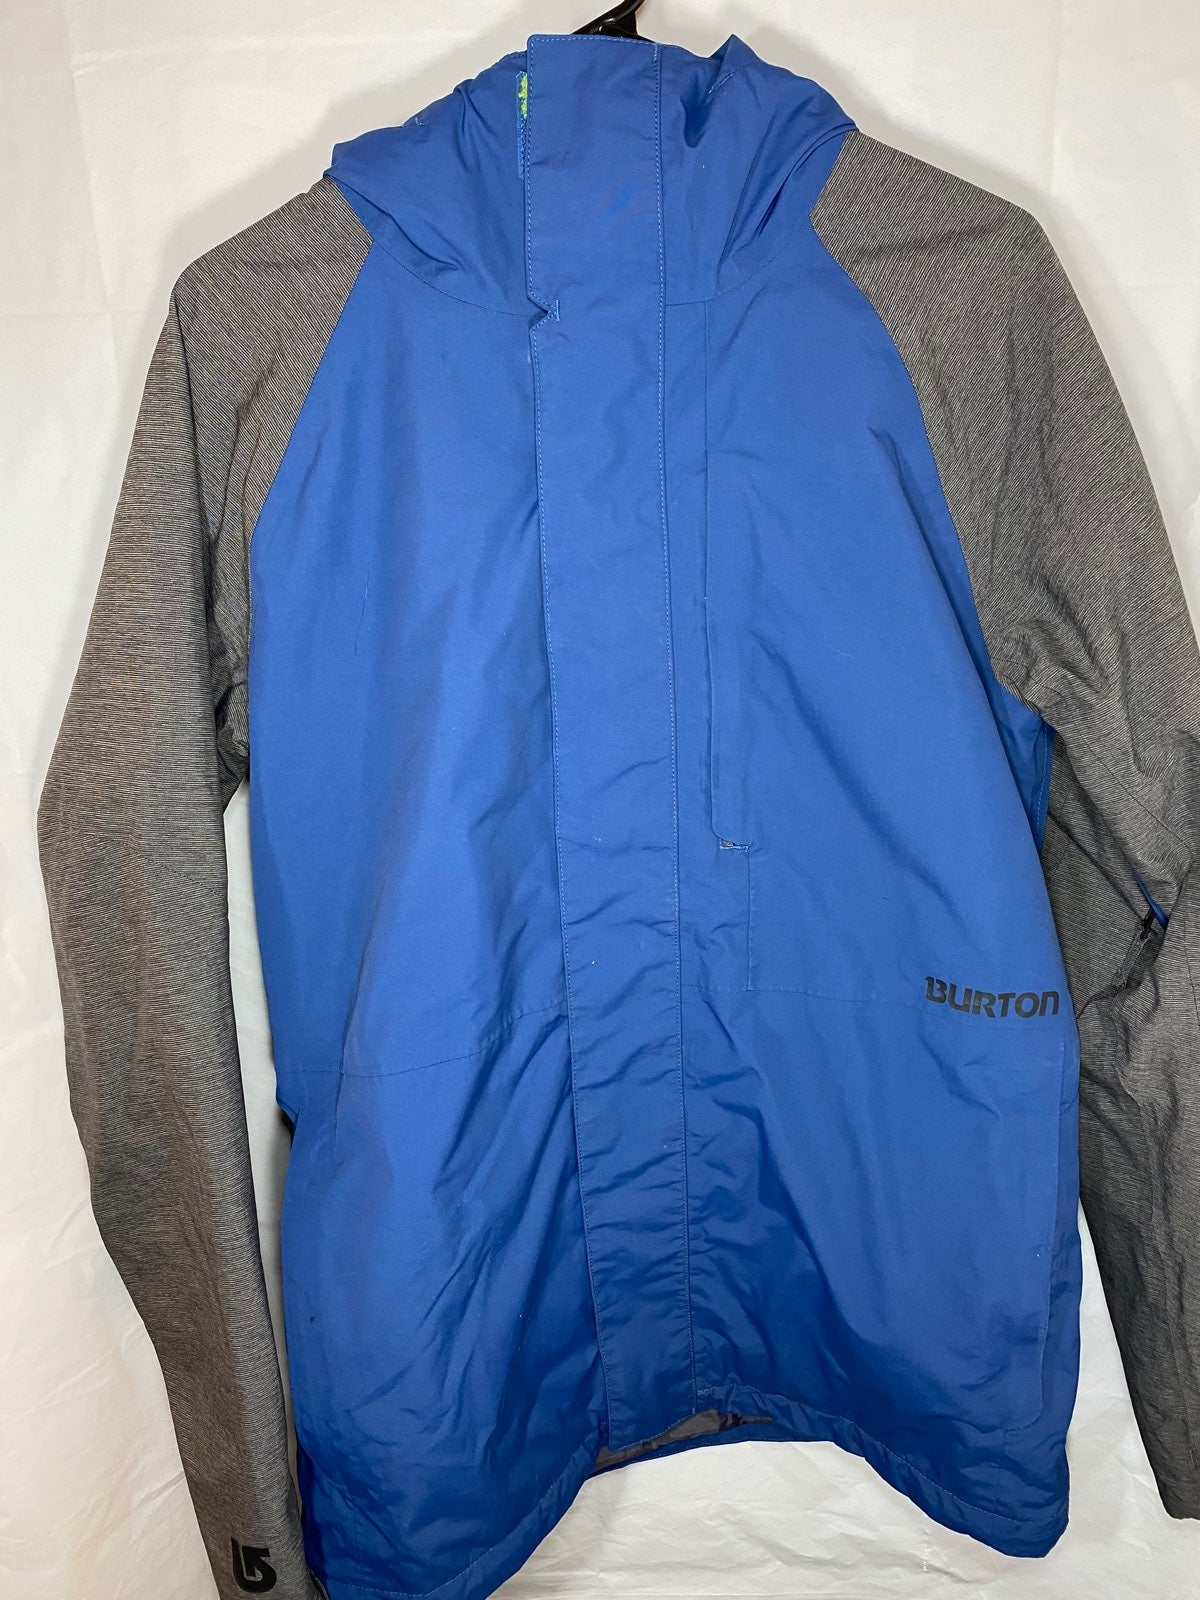 Jacketburton dryride winter jacket small